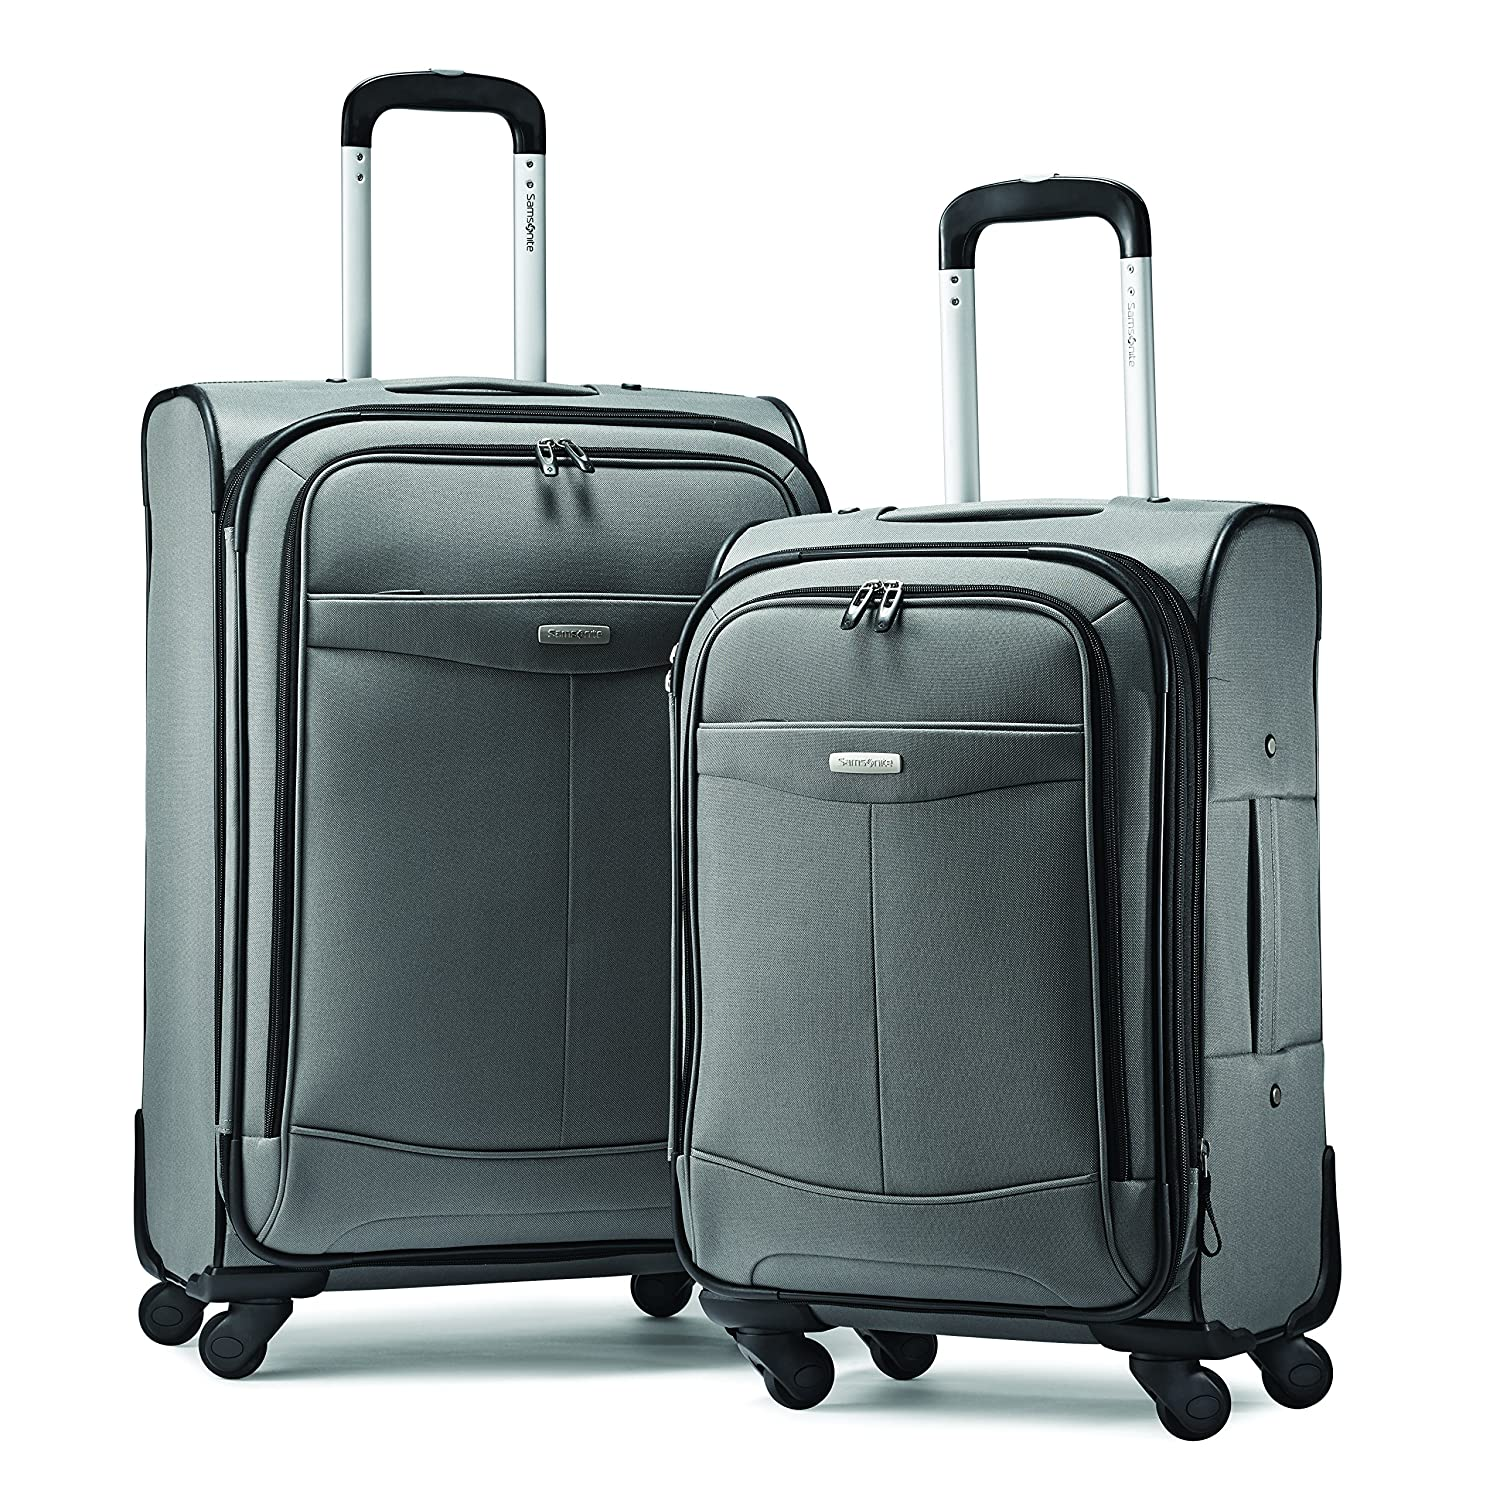 Amazon.com: Samsonite Proceed Two-Piece Softside Spinner Set ...